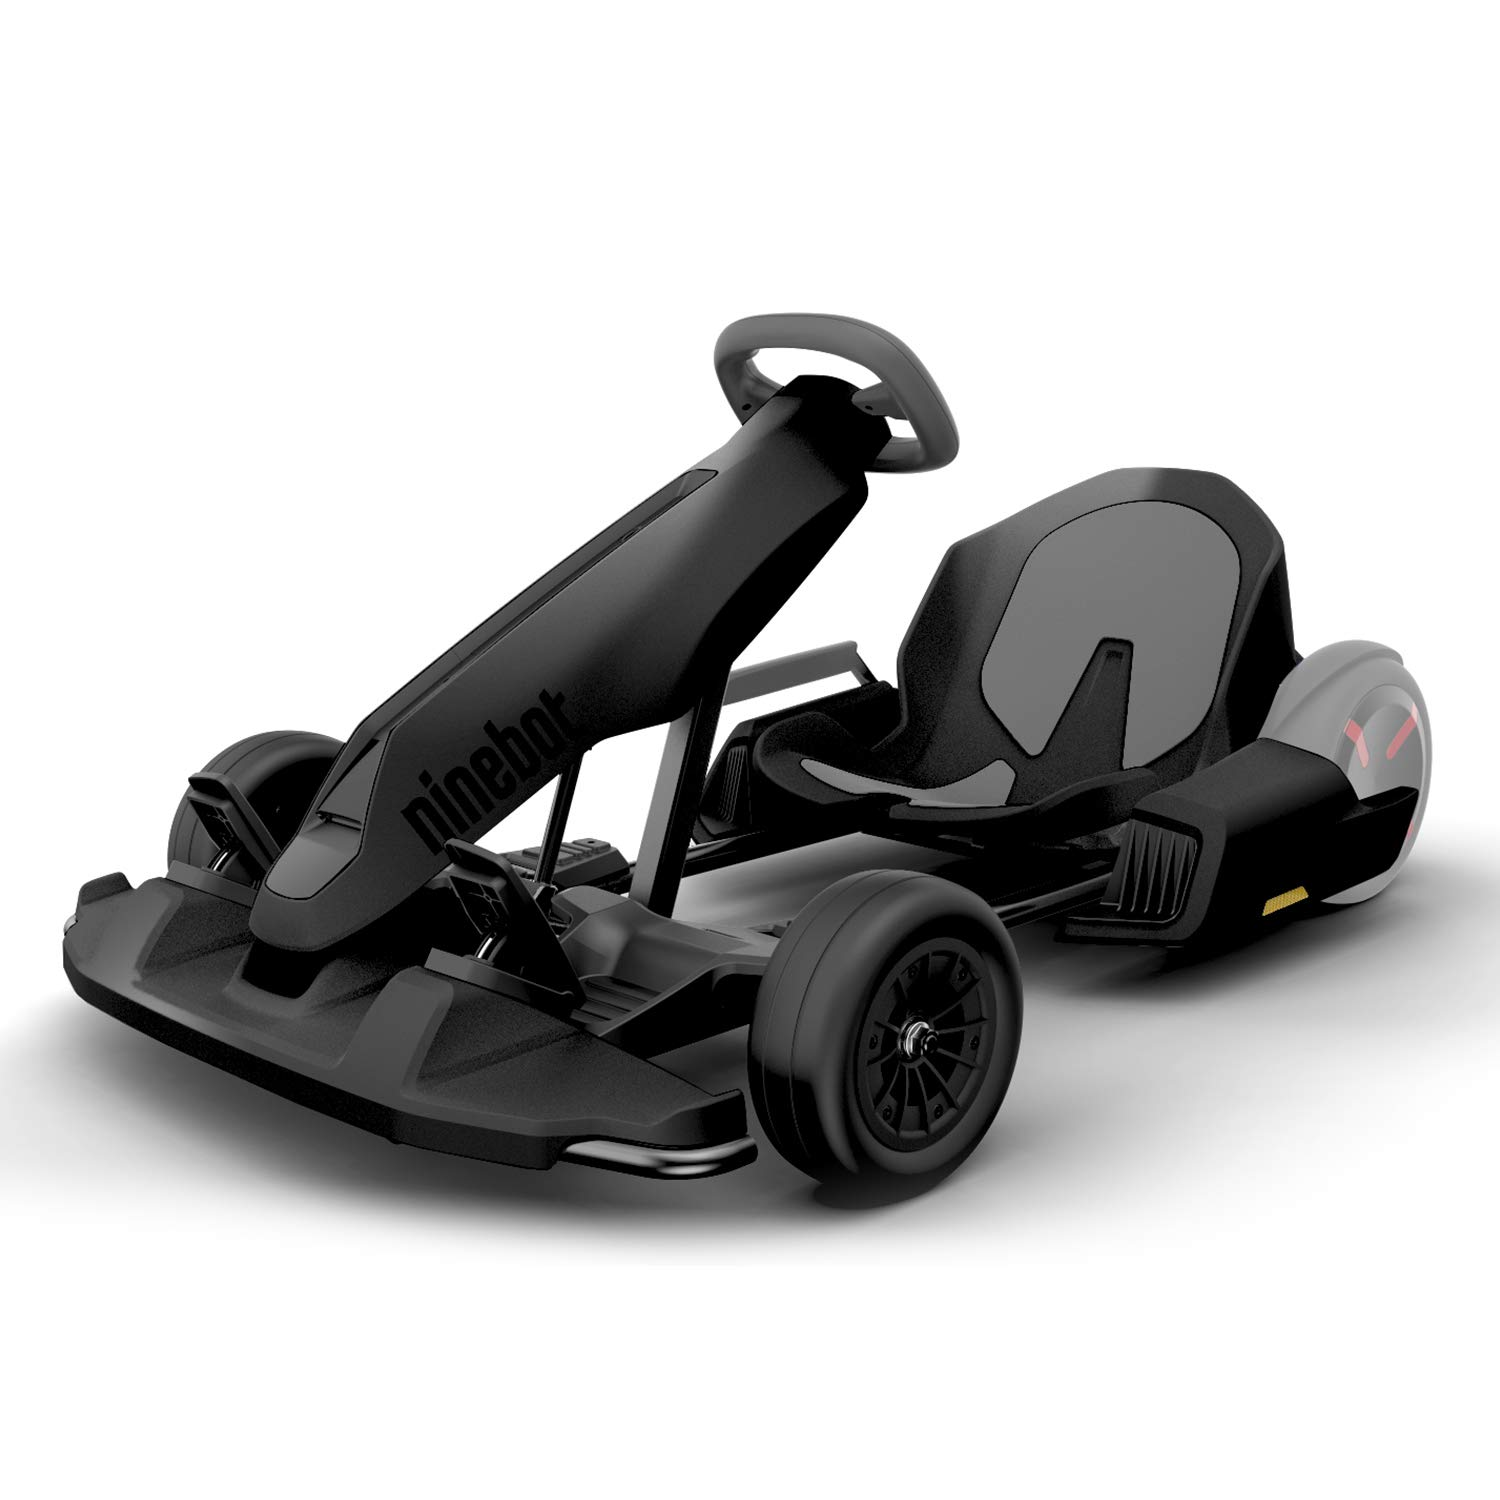 Segway Electric GoKart Kit Fitting for Ninebot S miniPRO Transporter ( Self  Balancing Scooter Excluded ), Big Racing Ride on Car Toy for Kids and